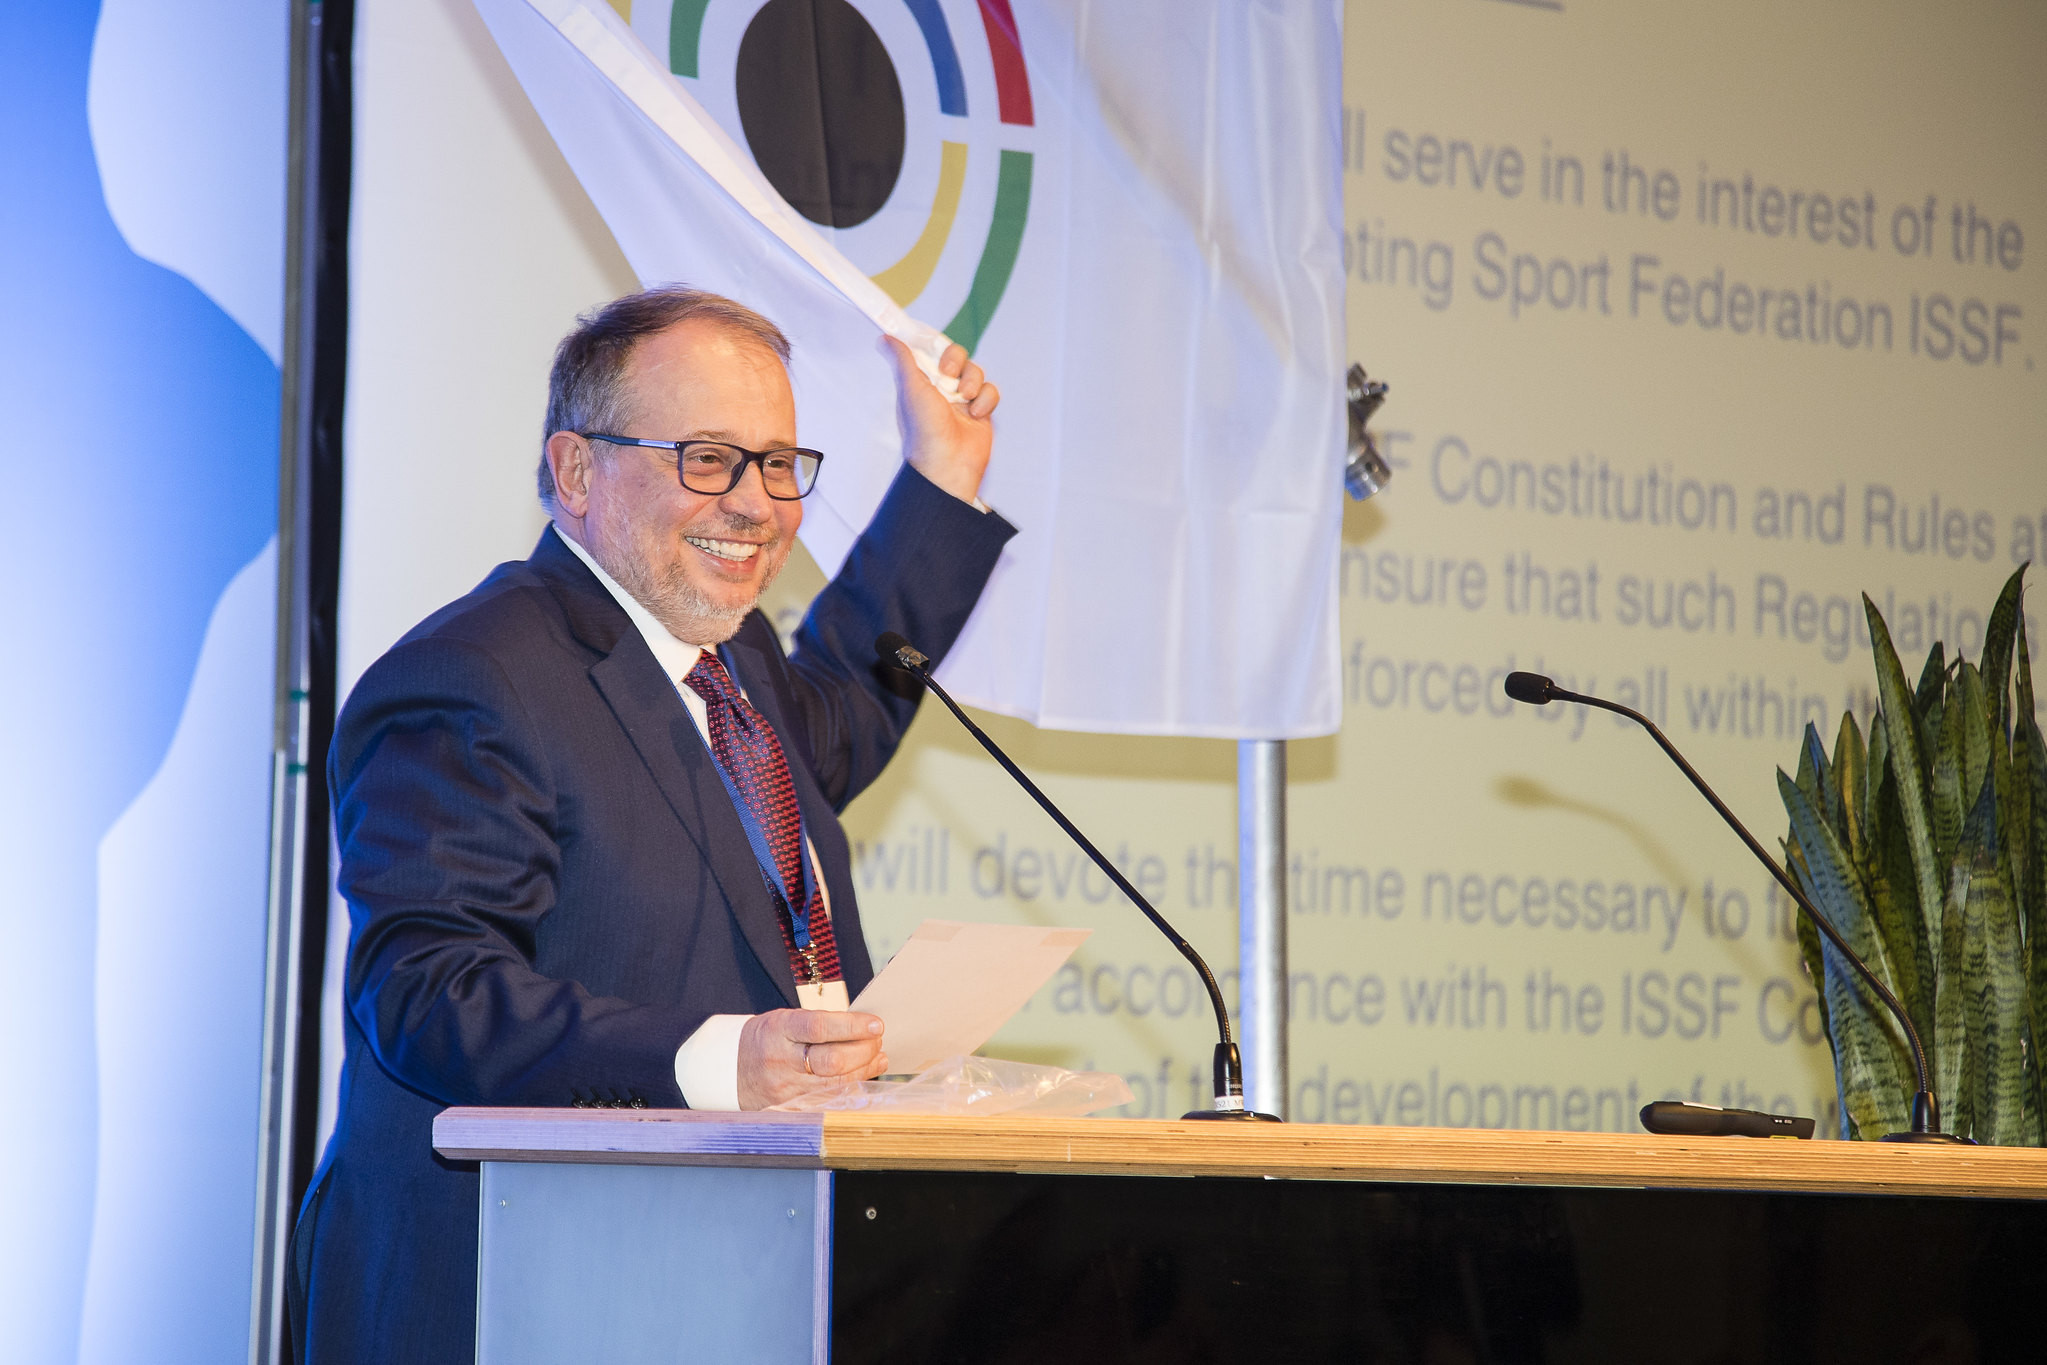 Vladimir Lisin was tasked with overhauling the constitution in 2016 but the document was rejected ©ISSF